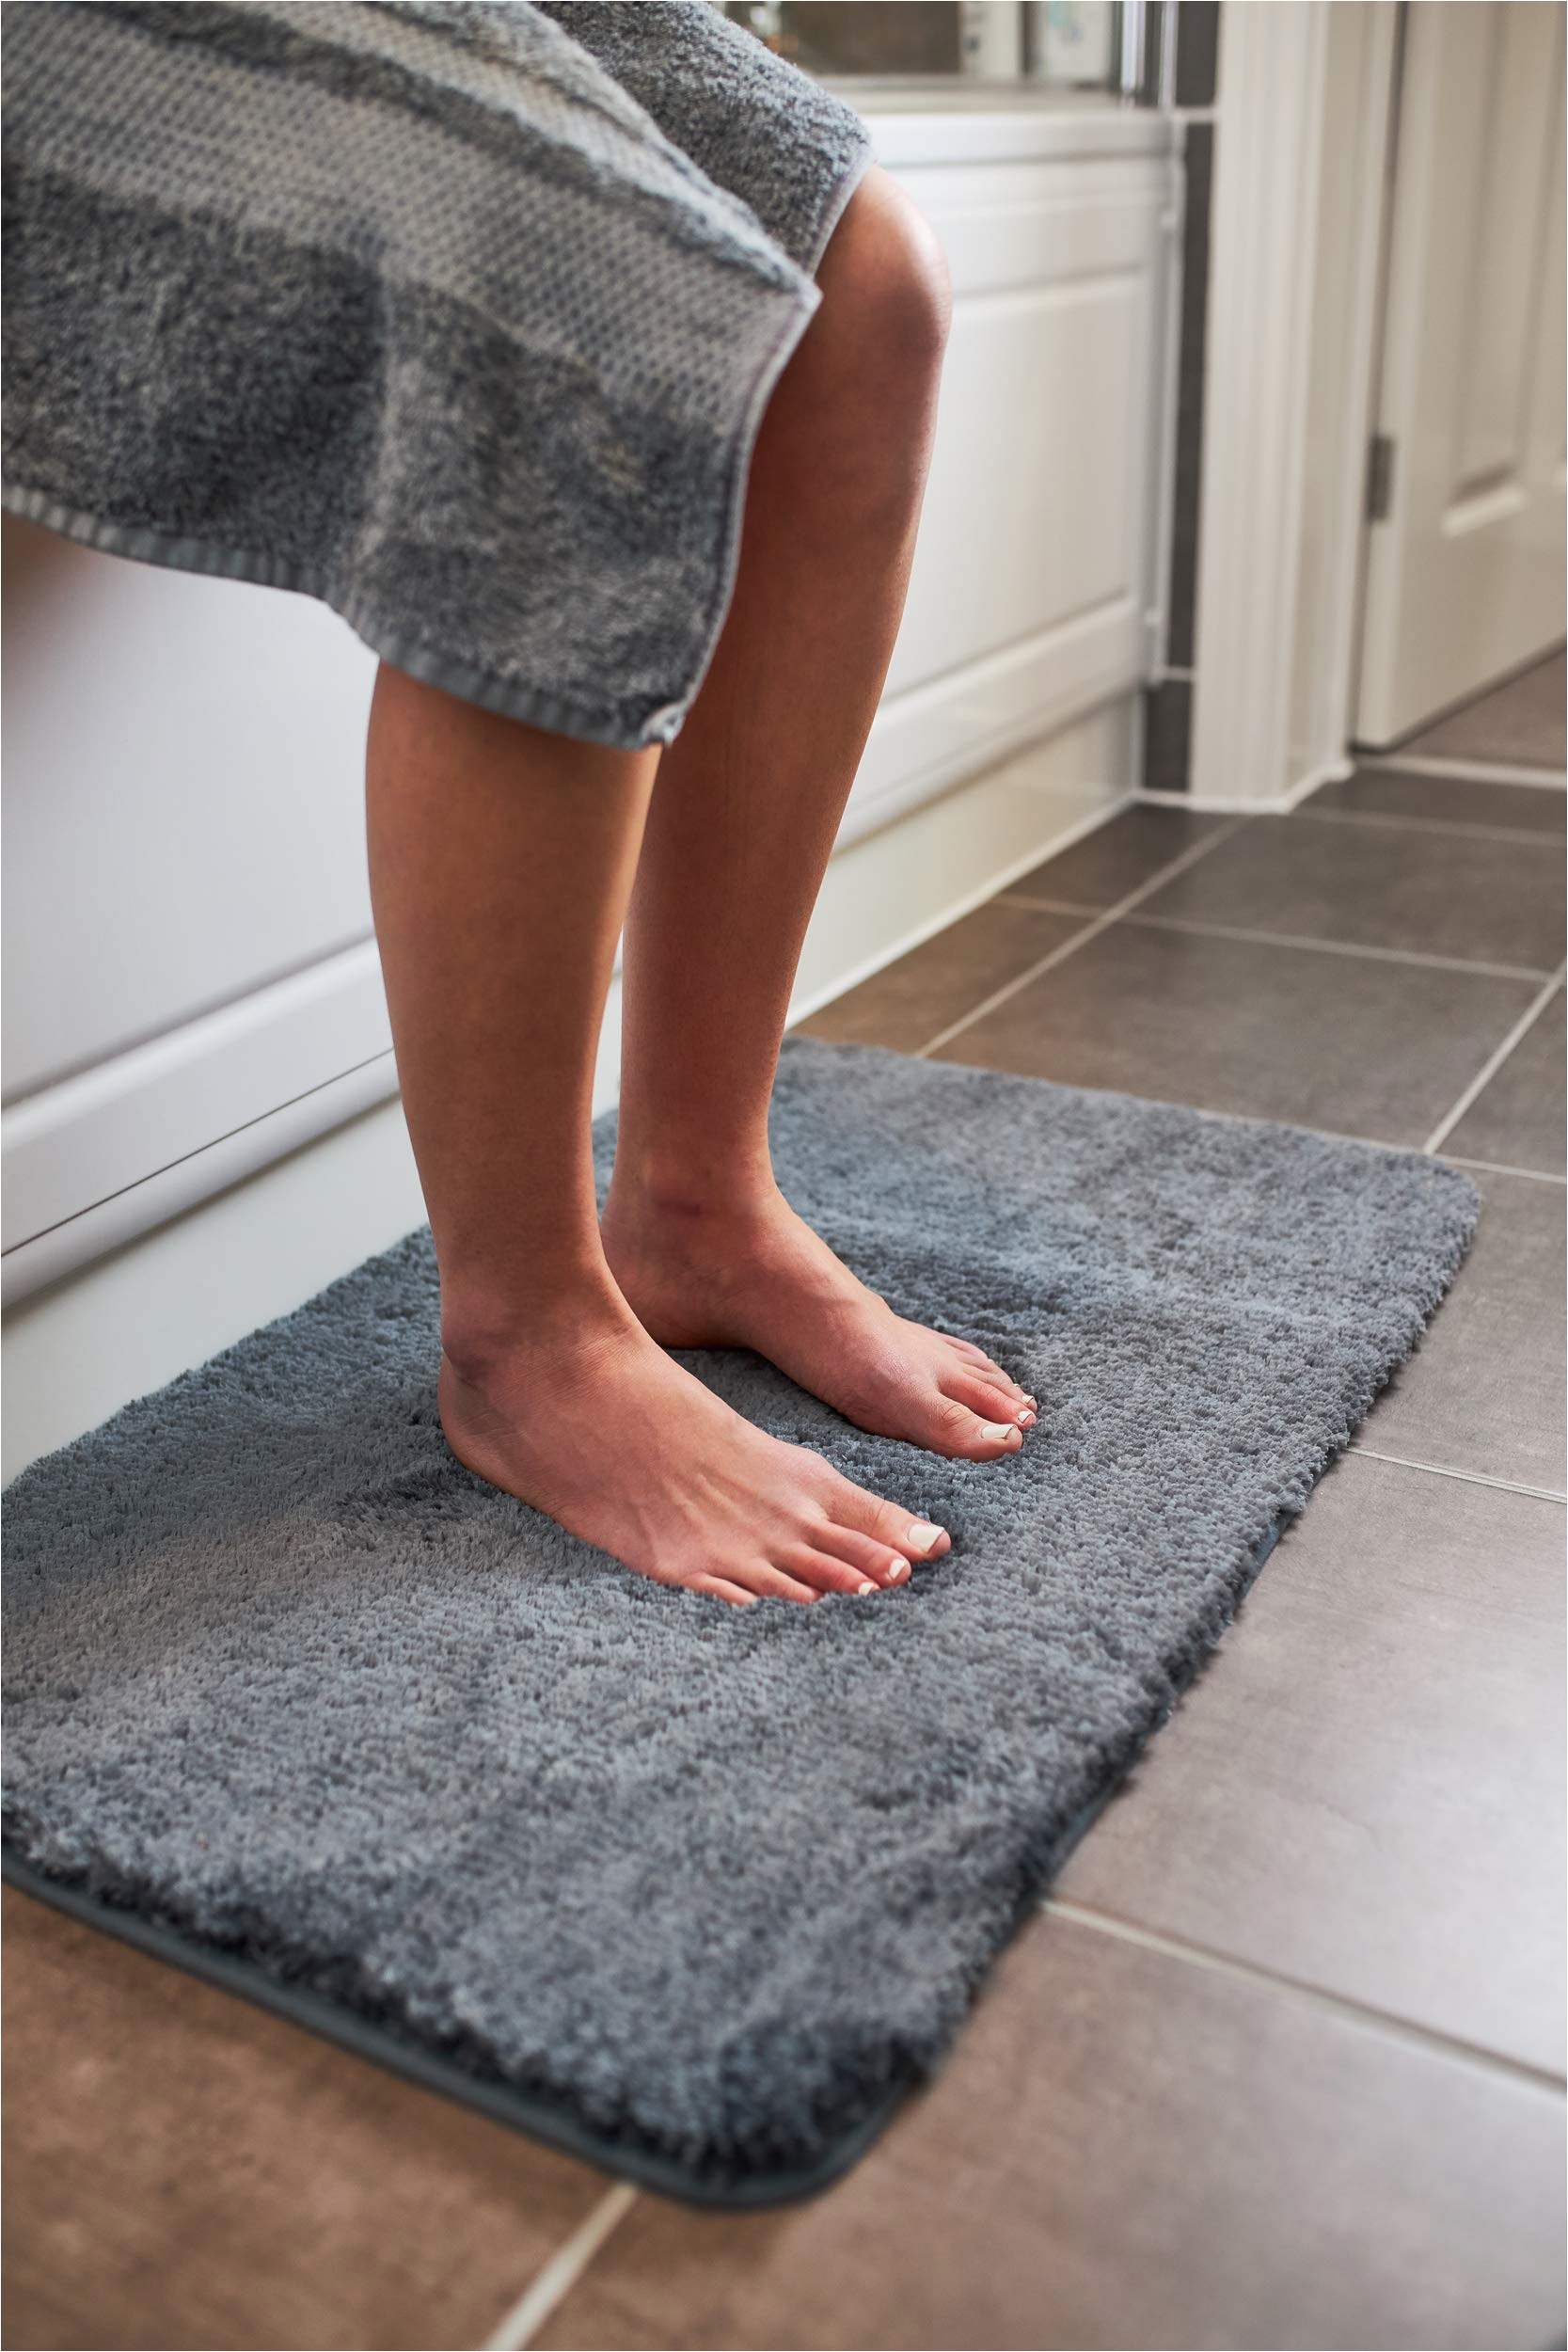 Good Quality Bath Rugs Luxury Grey Bath Mat Microfiber Non Slip Bath Rug with Super soft Absorbent Dry Fast Design for Bath and Shower